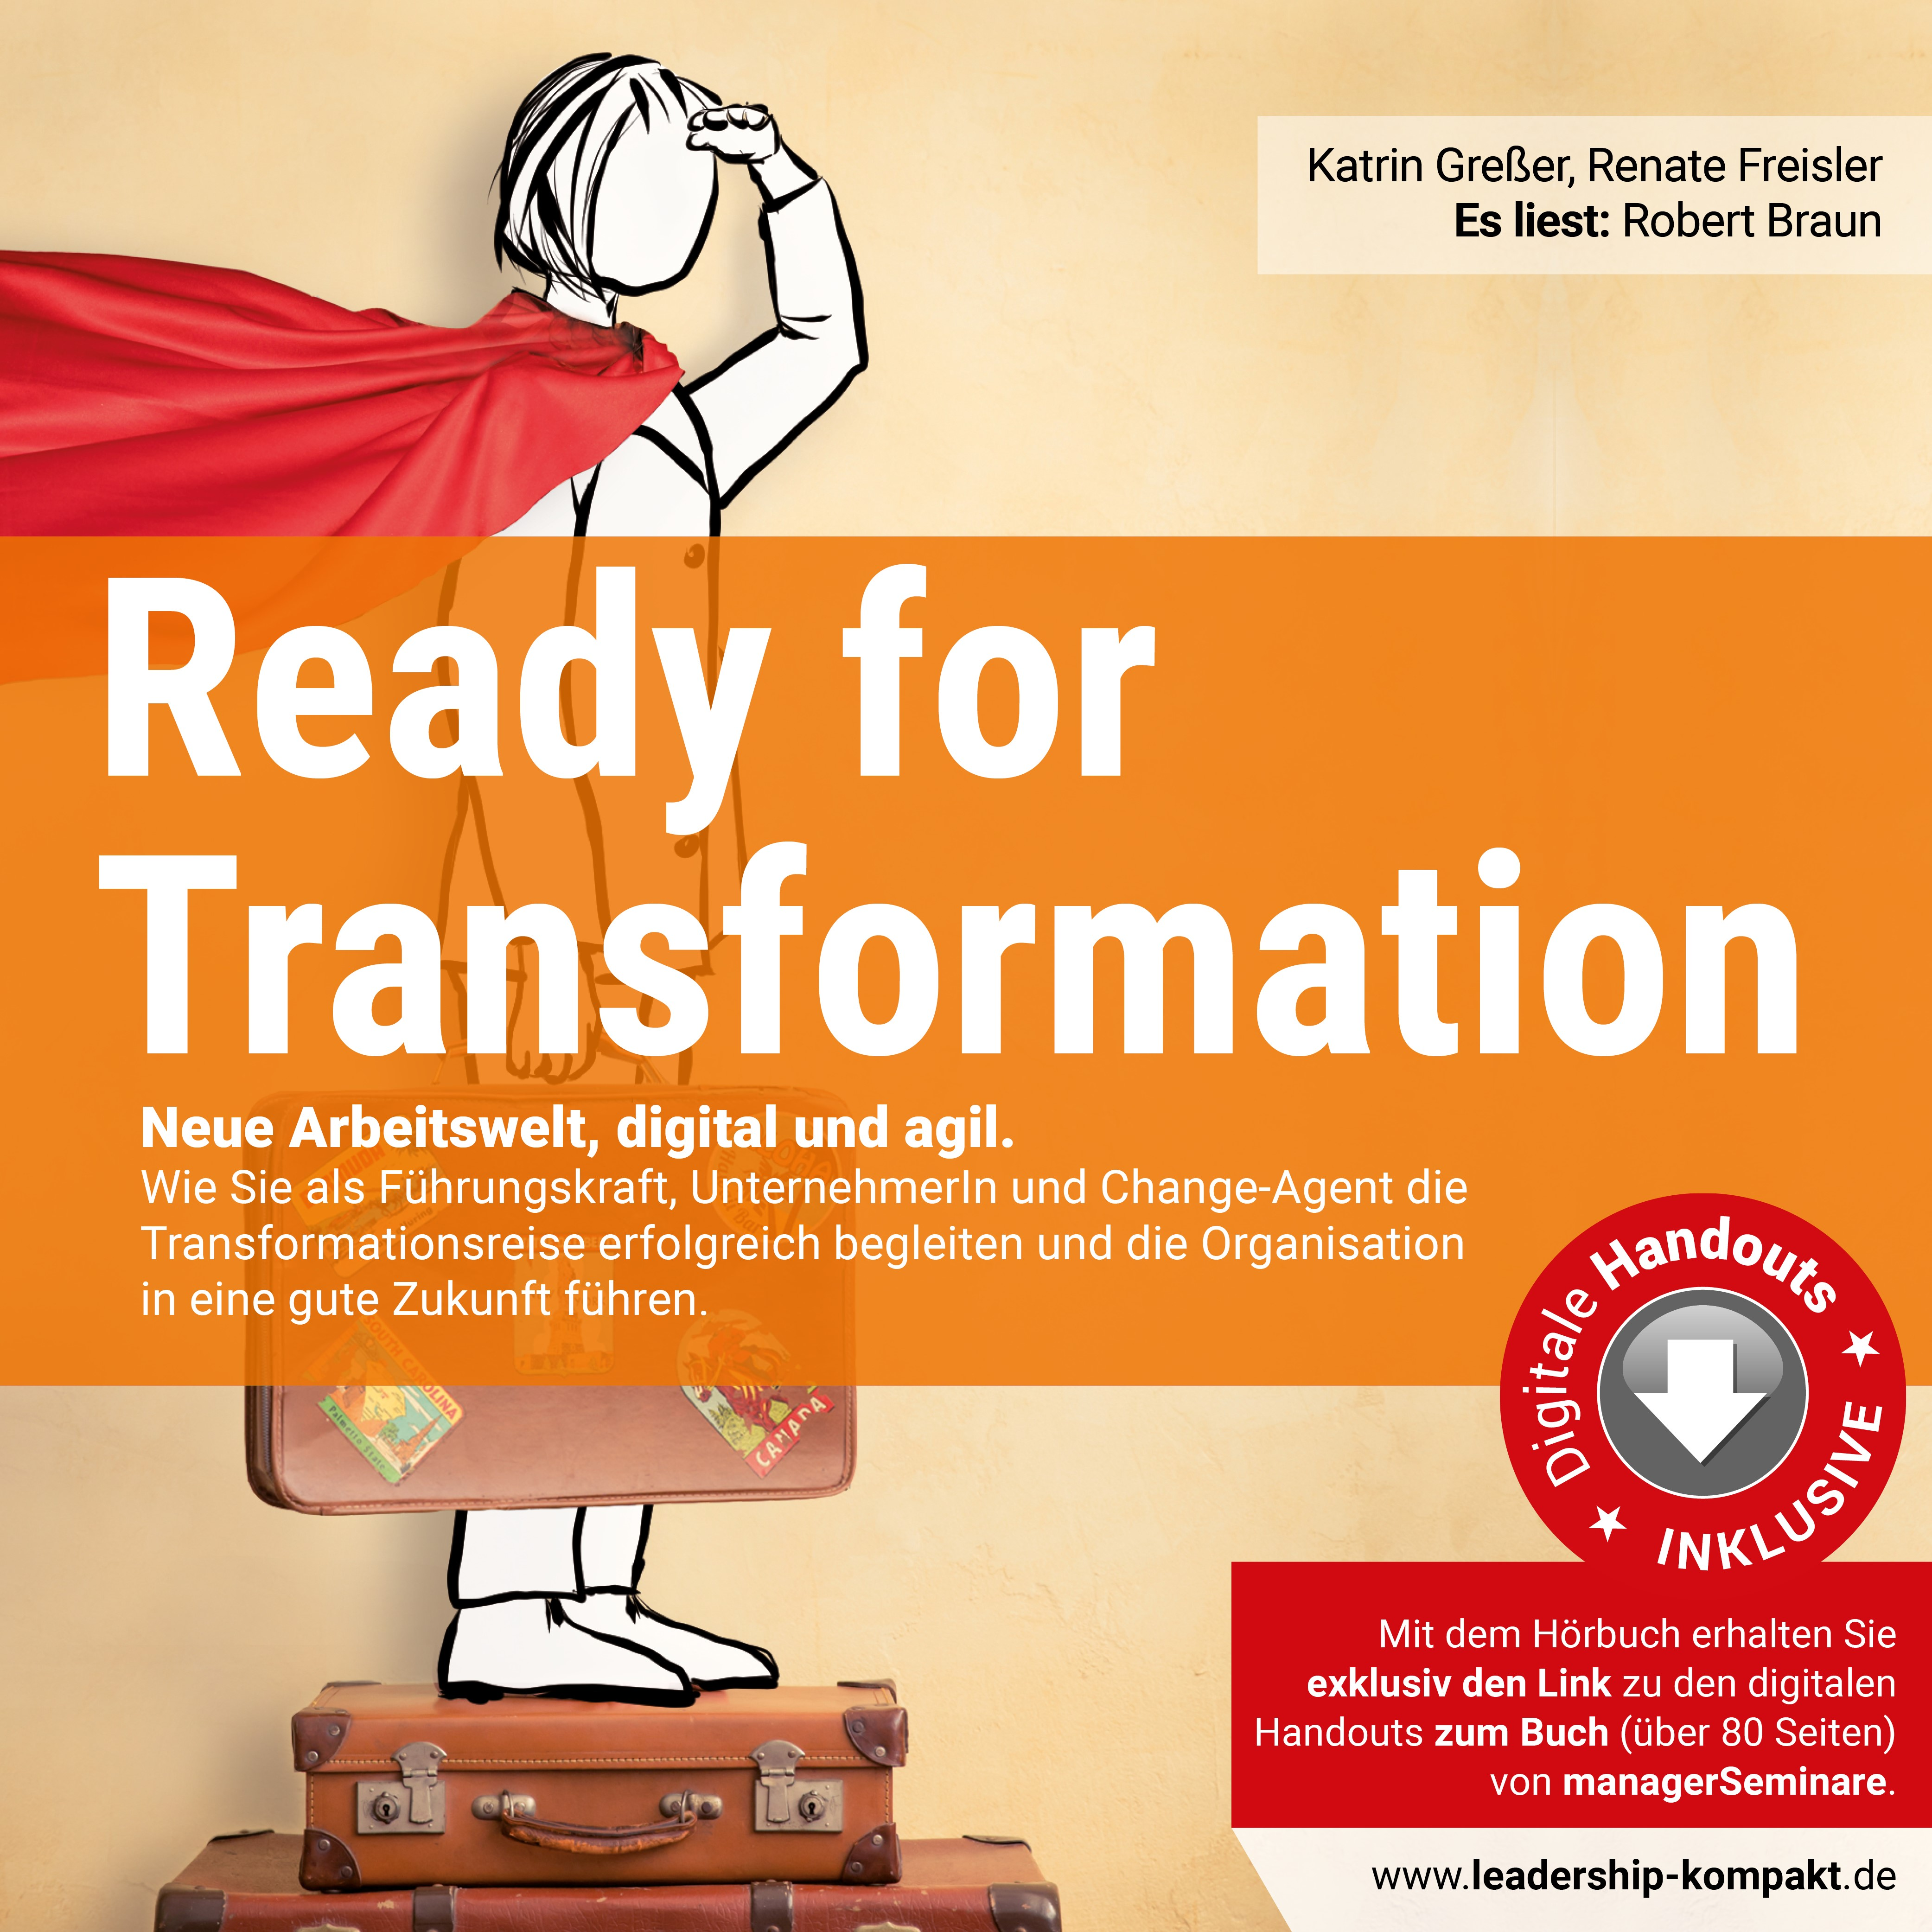 Hörbuch: Ready for Transformation